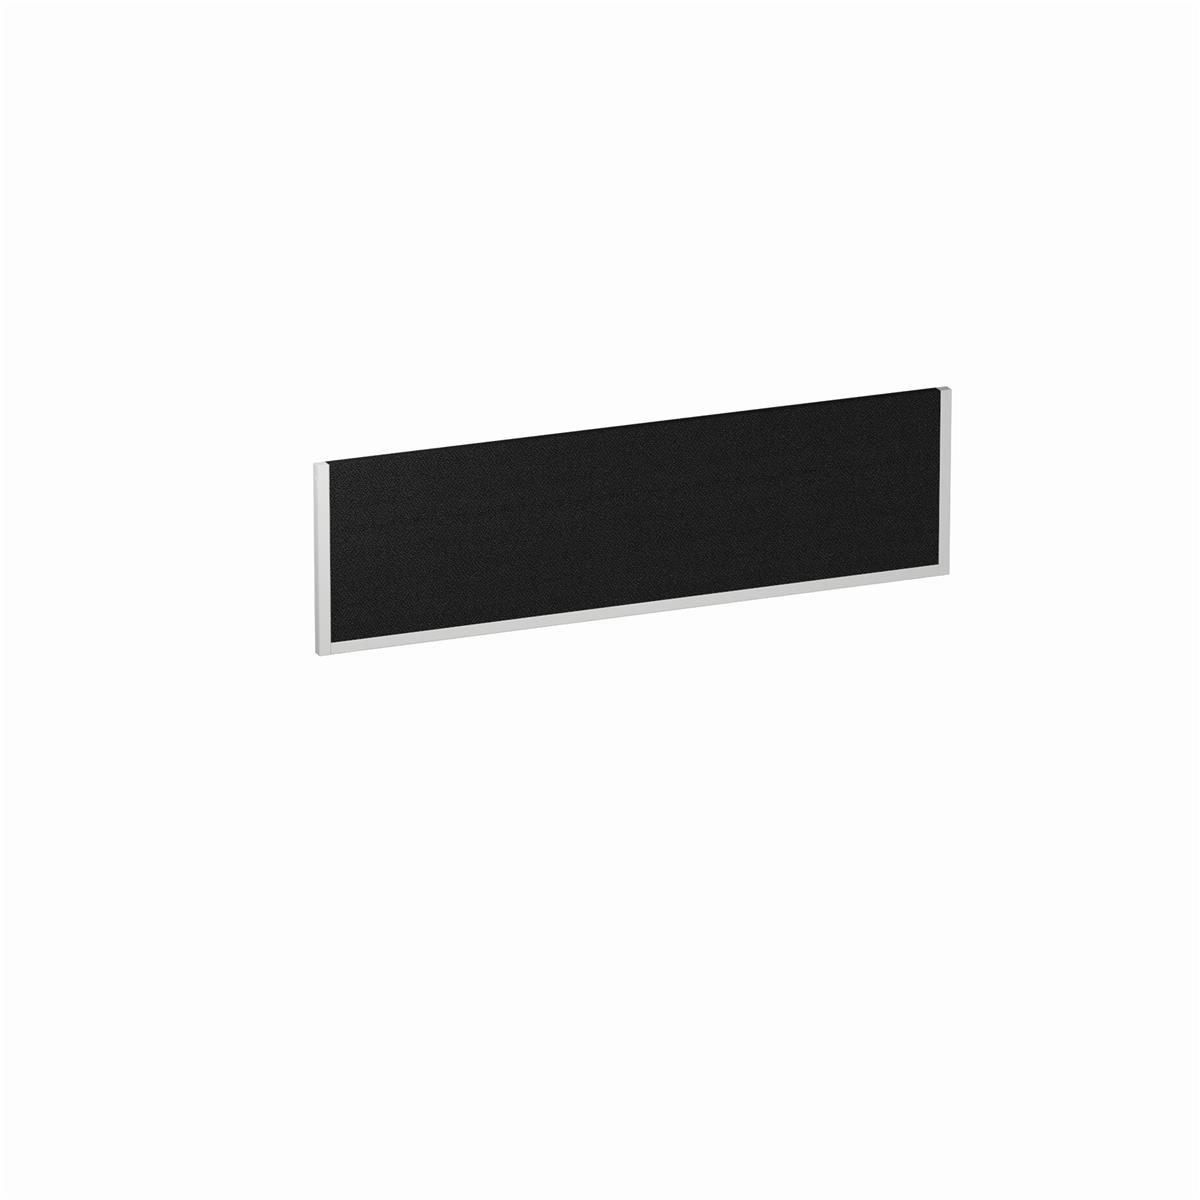 Trexus Desk Screen 1400mm Black with White Frame